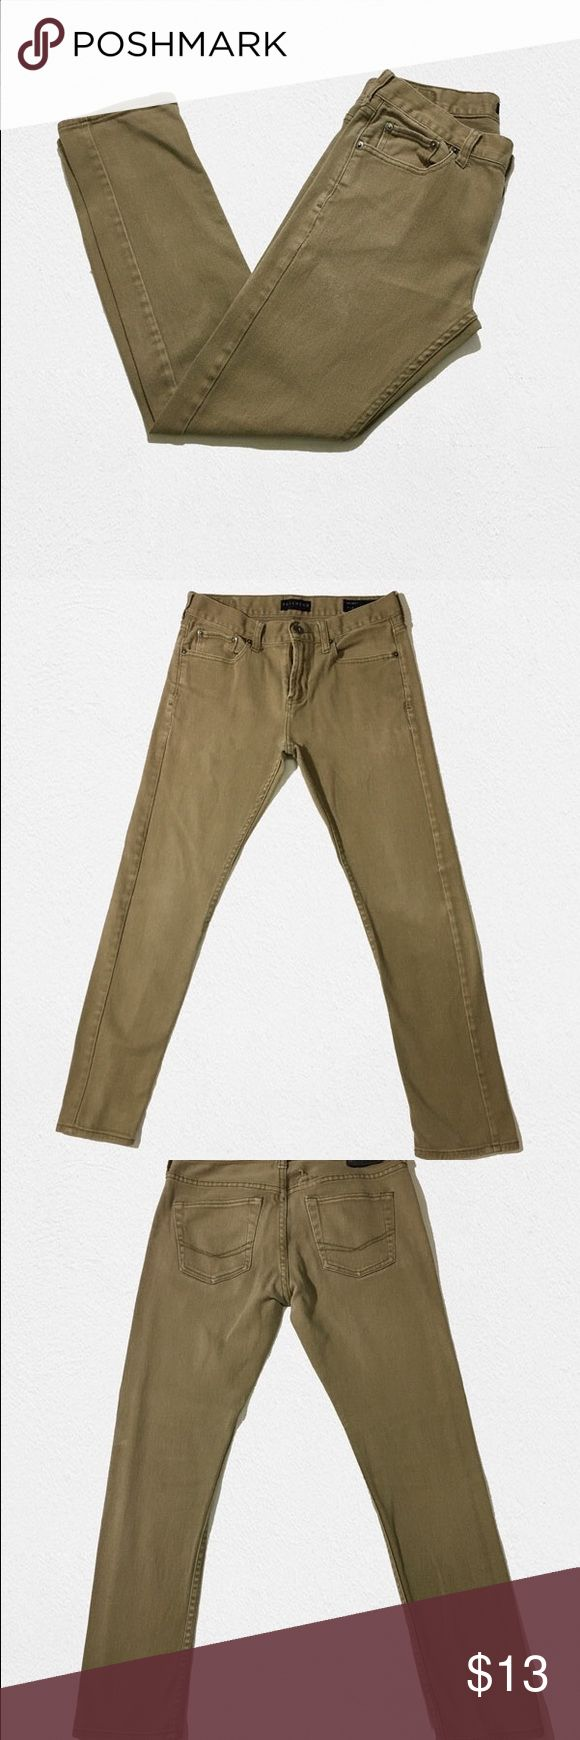 "Bullhead Denim Skinny Men's Jeans Khaki BULLHEAD DENIM SKINNY KHAKI PANTS Used, but still in great condition.   Size: 29x30  Measurements (FLAT)  Length: 37.5""  Inseam: 27"" Waist: 15""  Thigh Width: 10"" Ankle Opening: 6.5"" Bullhead Jeans Skinny"